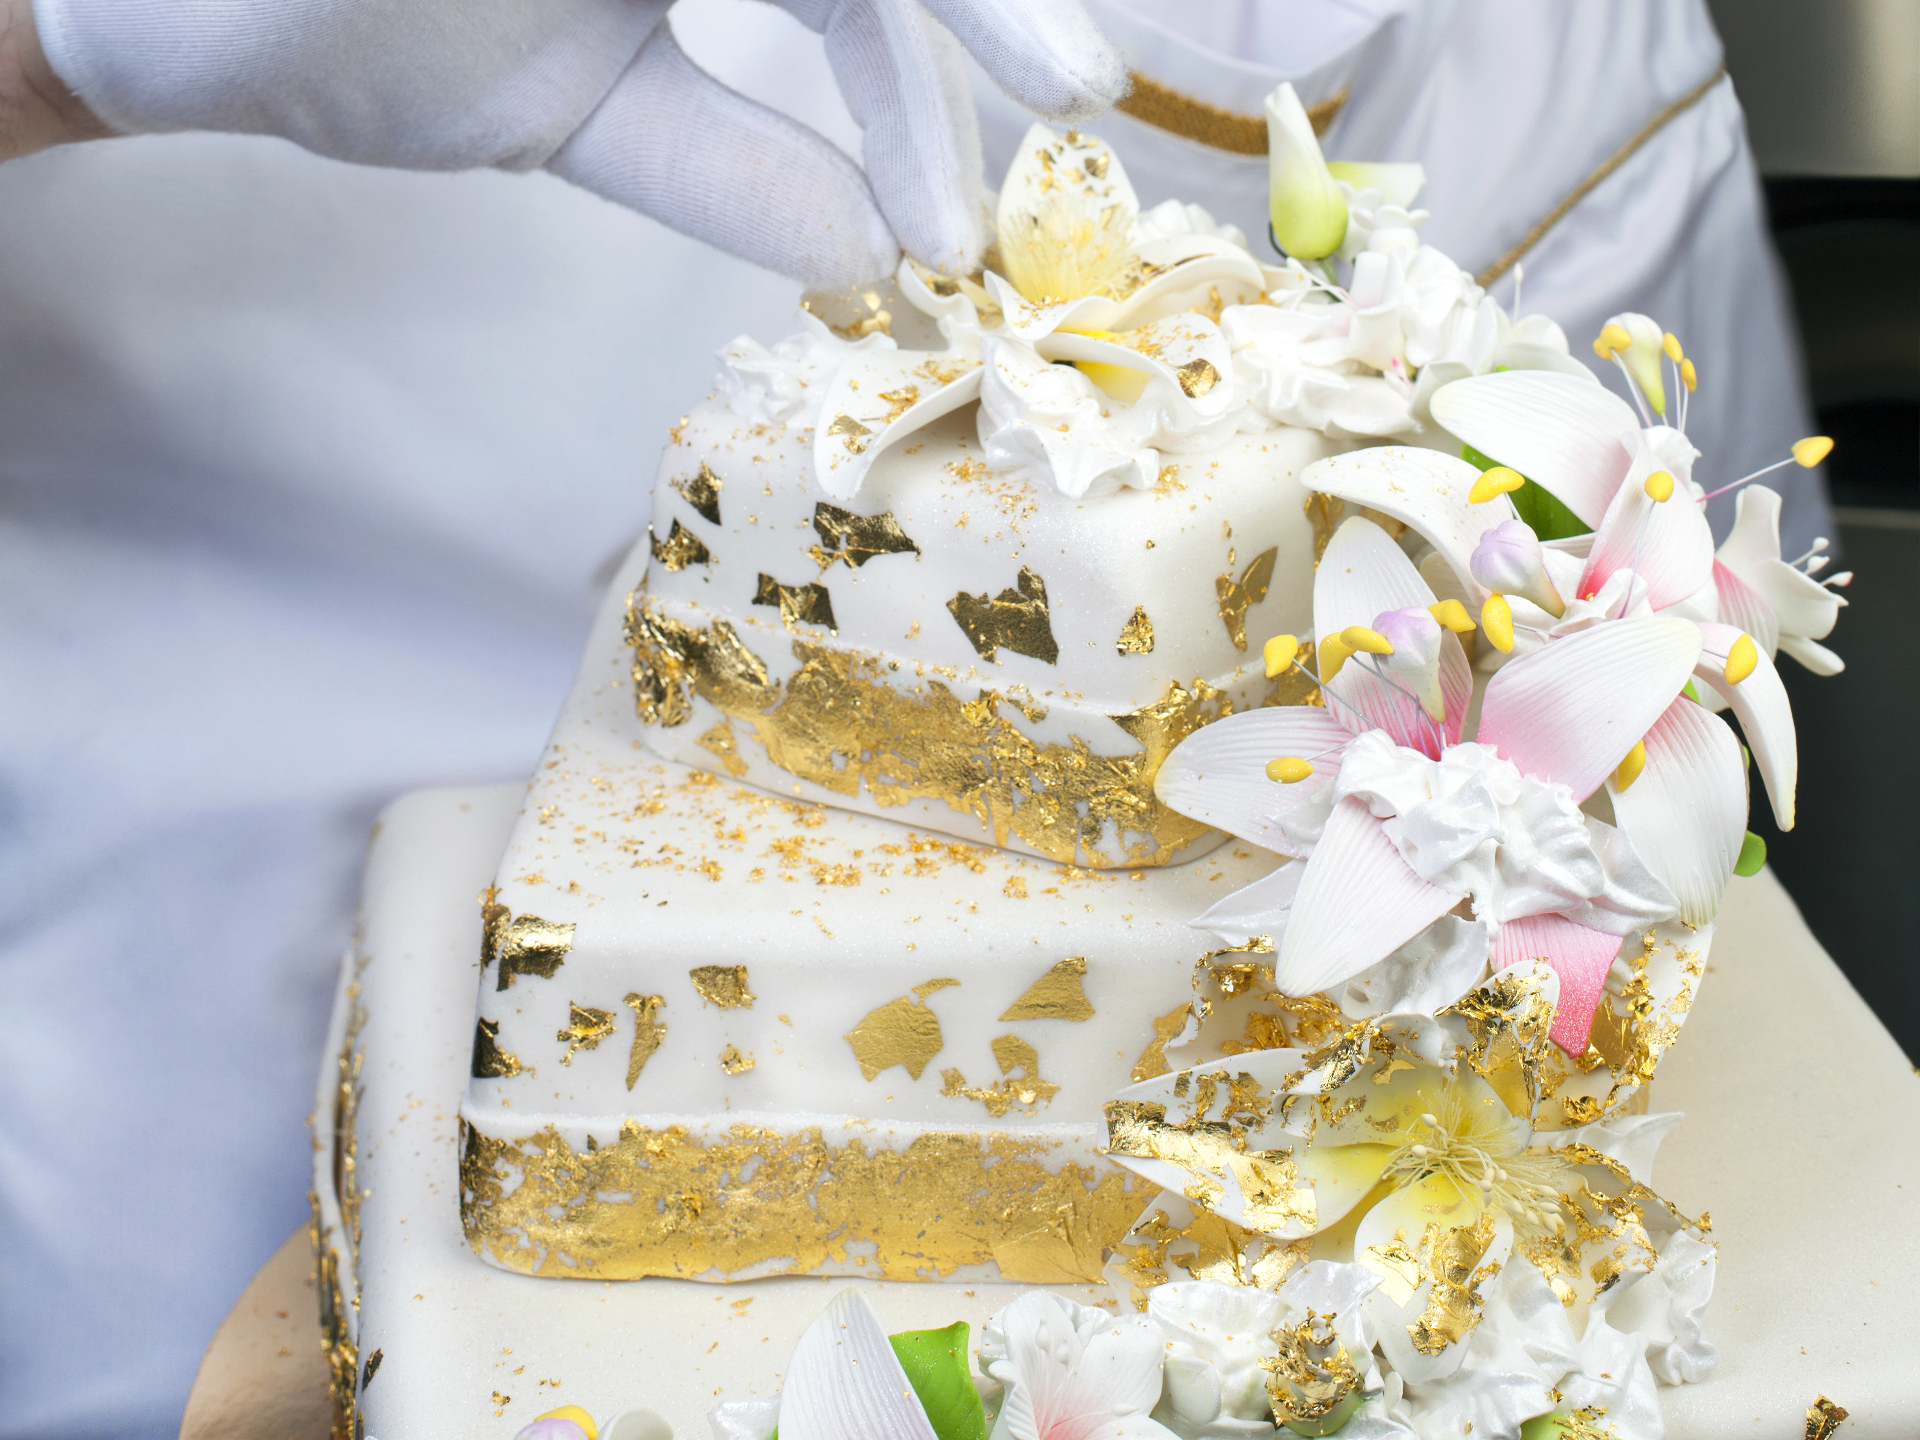 Large vanilla cake with edible gold flakes.